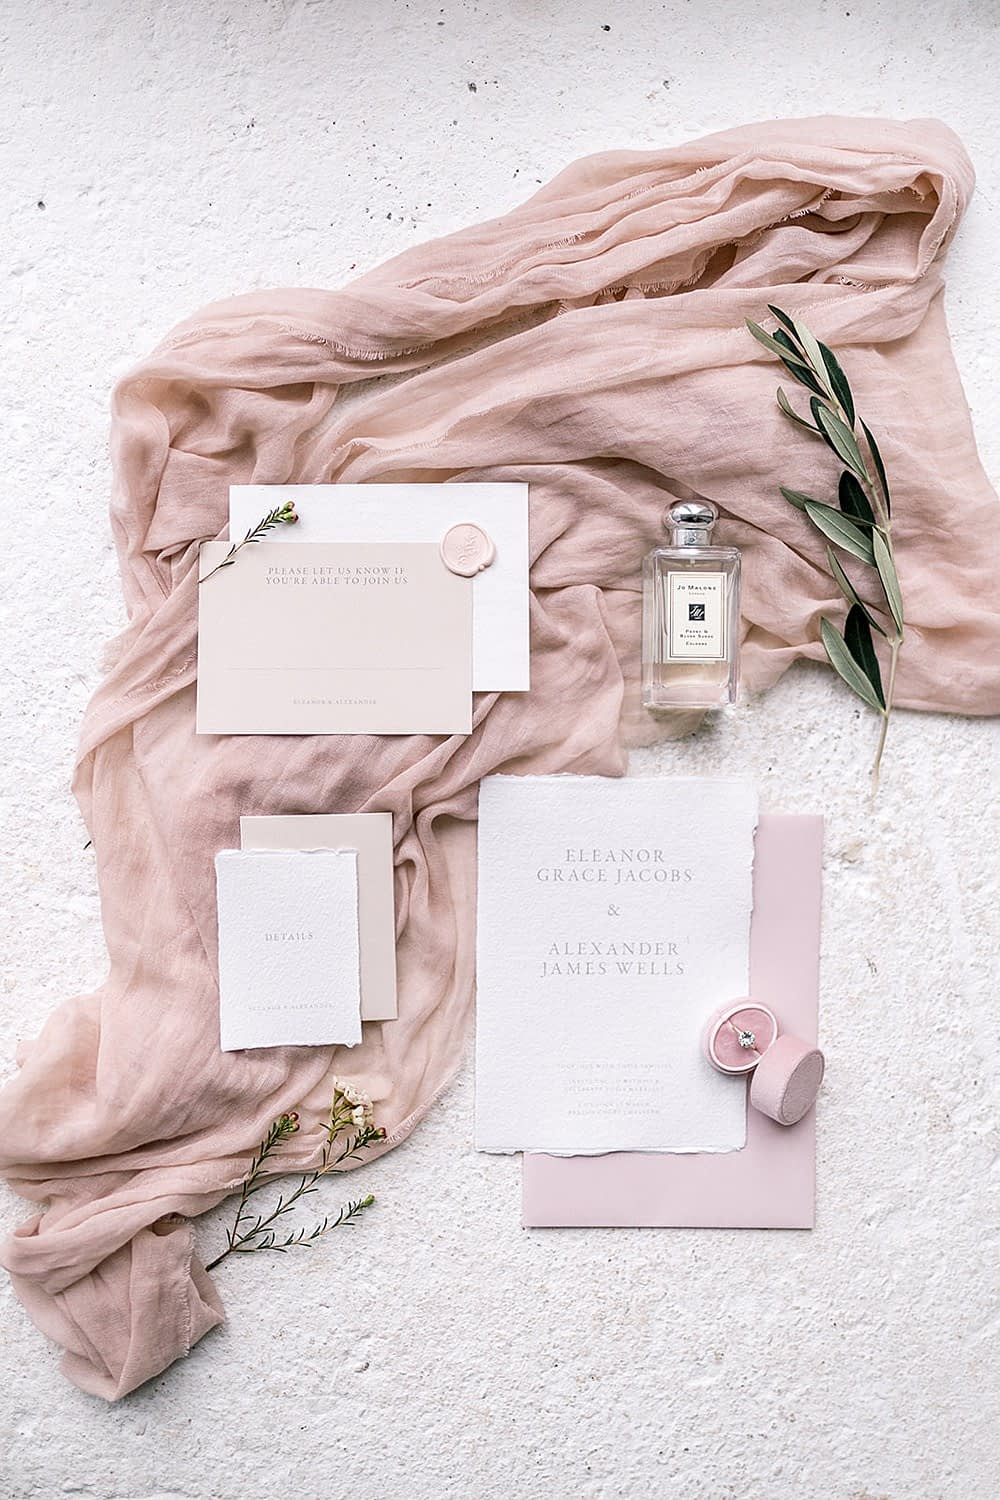 """Image by <a class=""""text-taupe-100"""" href=""""https://www.chloeelyphotography.com"""" target=""""_blank"""">Chloe Ely Photography</a>."""